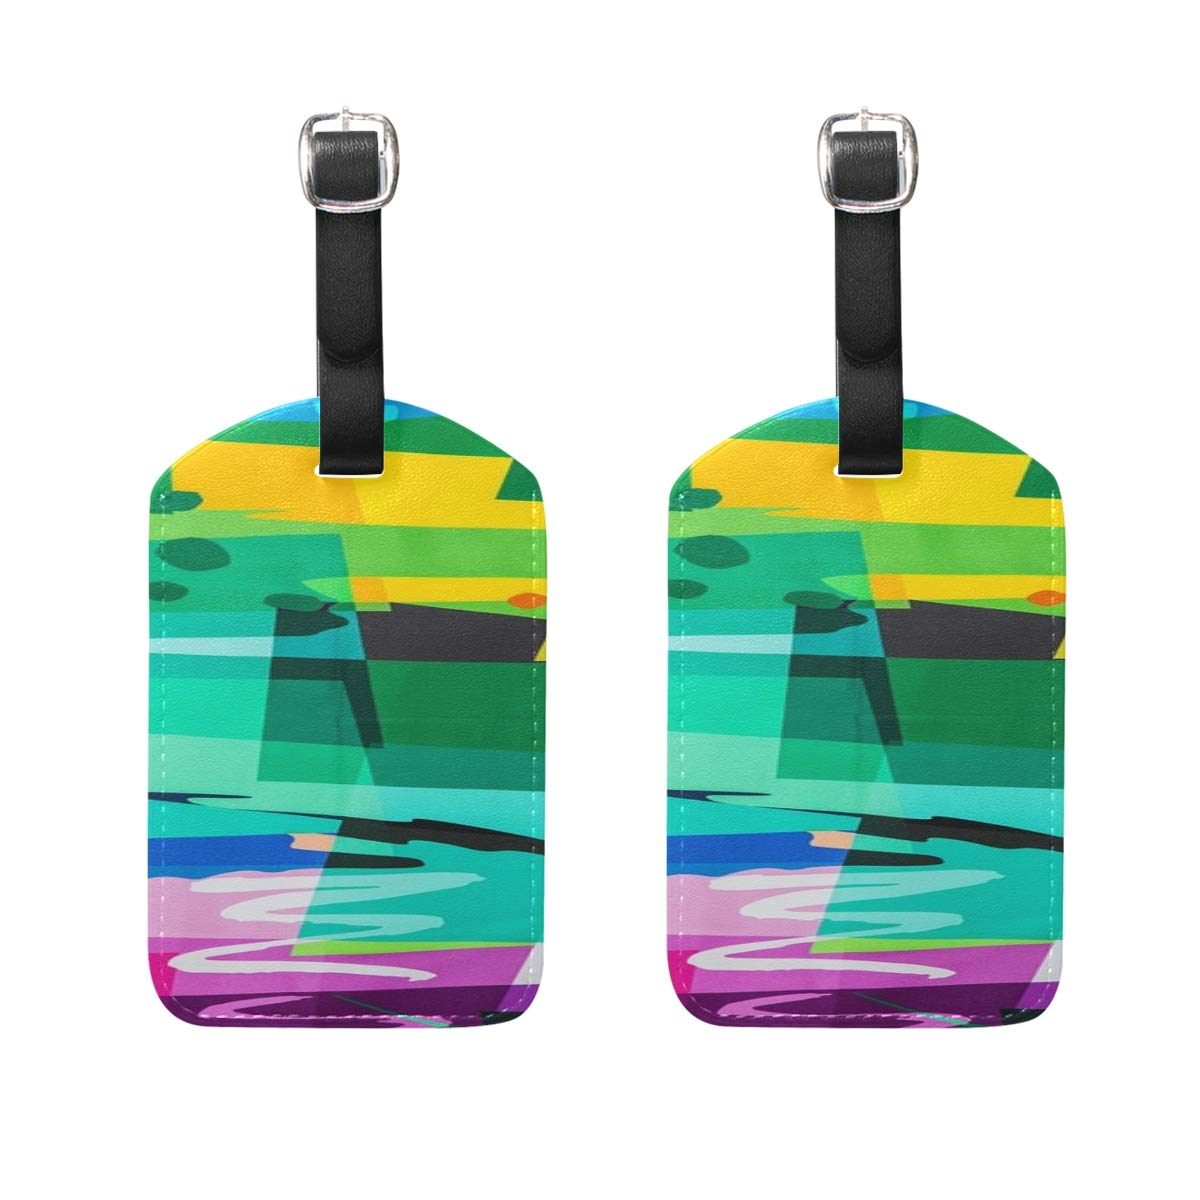 Fabric Pattern Cotton Silk Color Textile Painted Pattern Pu Leather Id Tags Business Card Holder Labels Baggage Suitcase Luggage Tags Travel Accessories